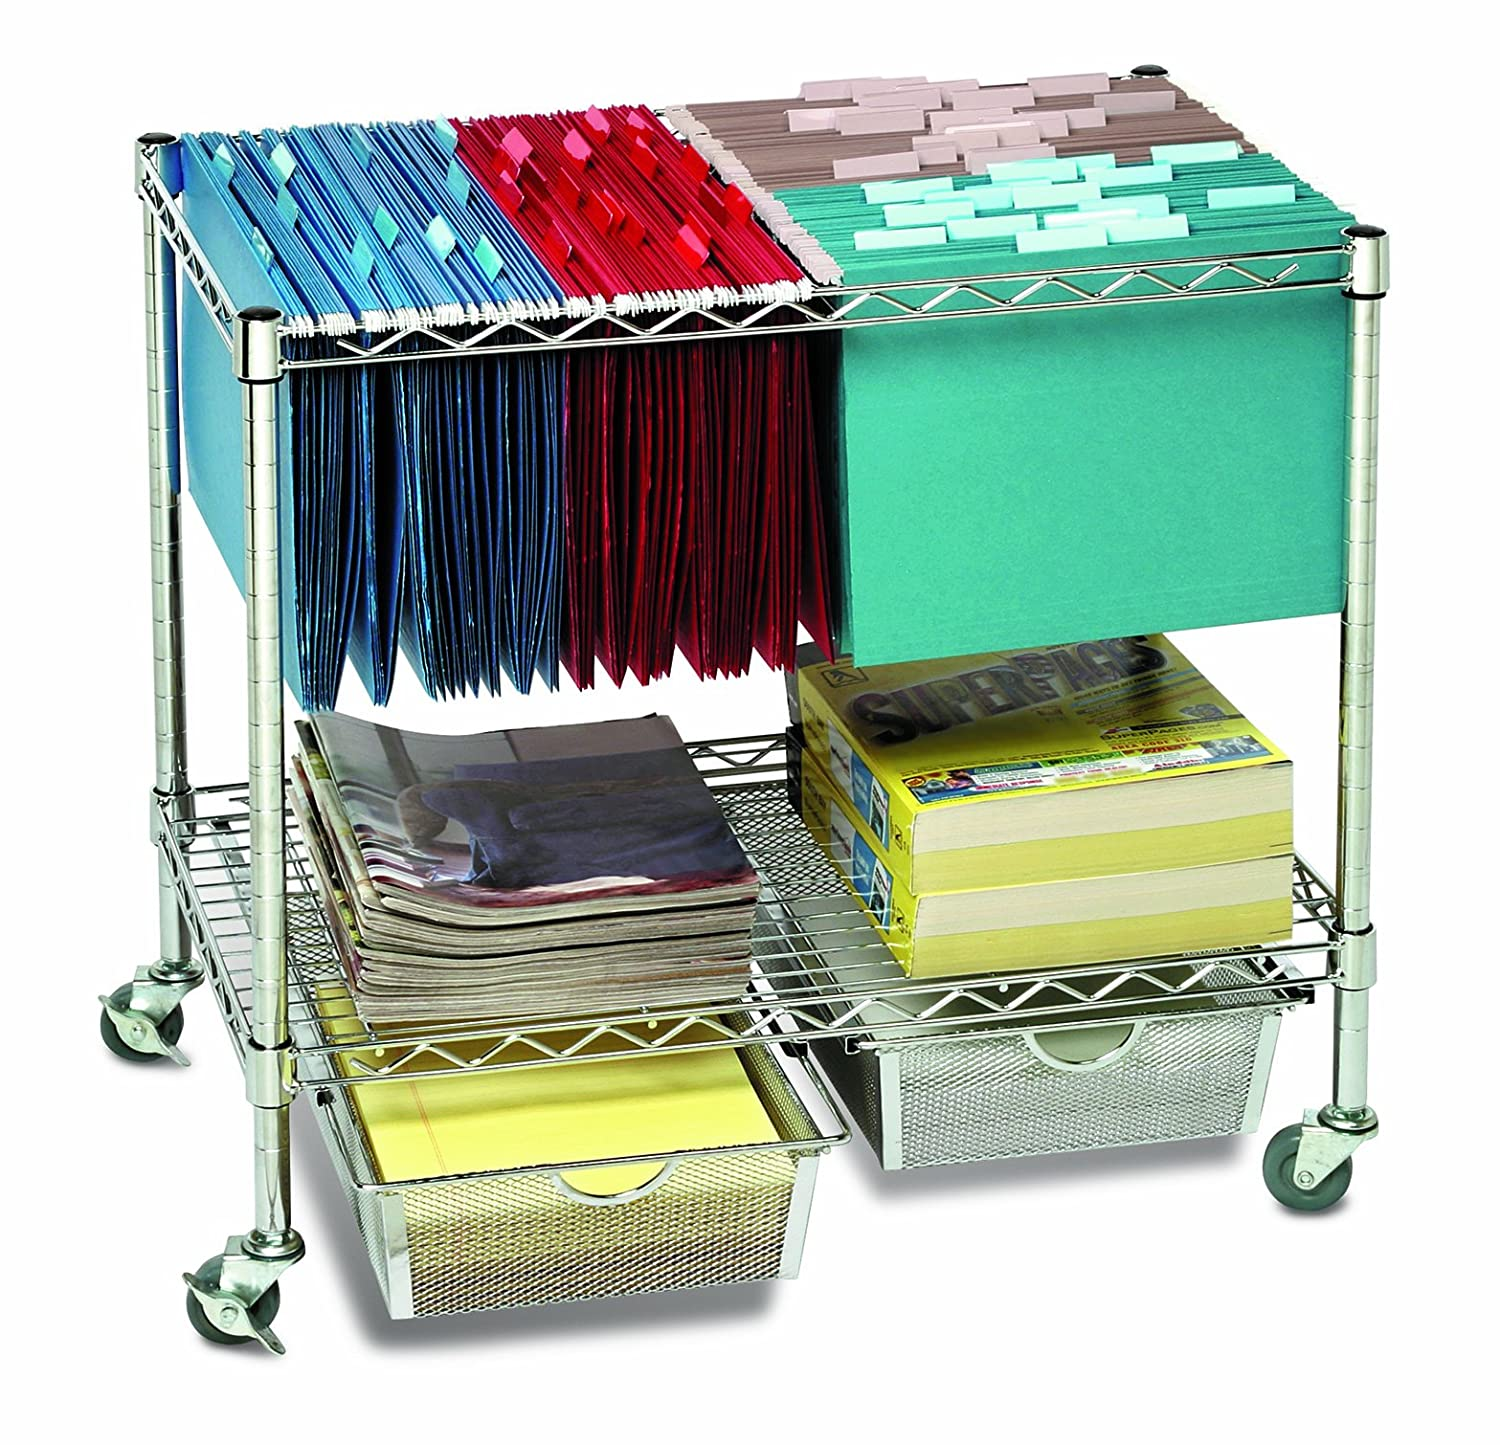 Amazon.com: Seville Classics 3 Tier Mobile Letter/Legal Office File U0026  Utility Cart With 2 Steel Wire Mesh Baskets: Home U0026 Kitchen